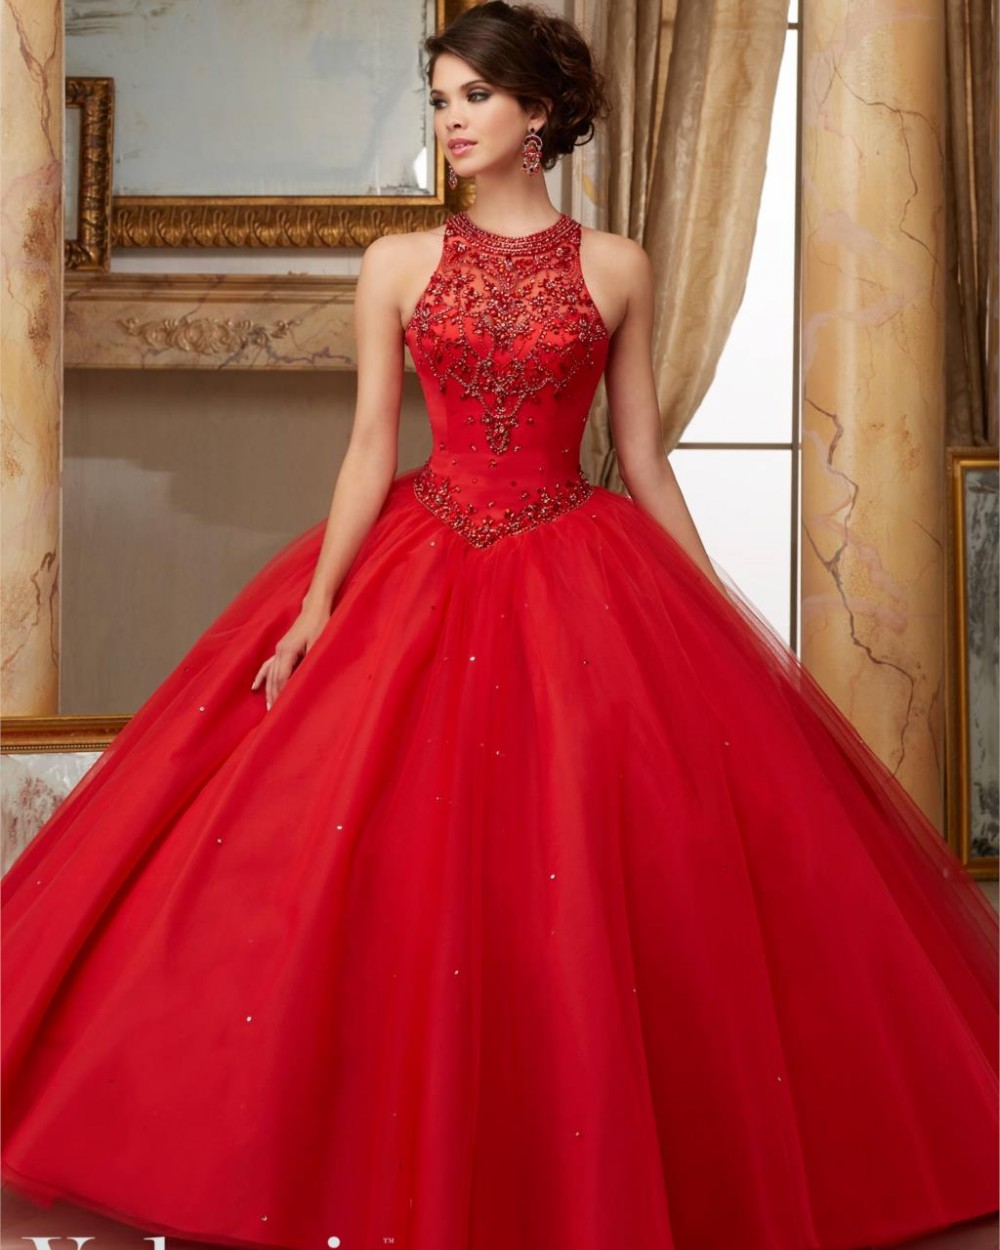 Scarlet Red Corset Quinceanera Dress Simple Jeweled Beaded ...